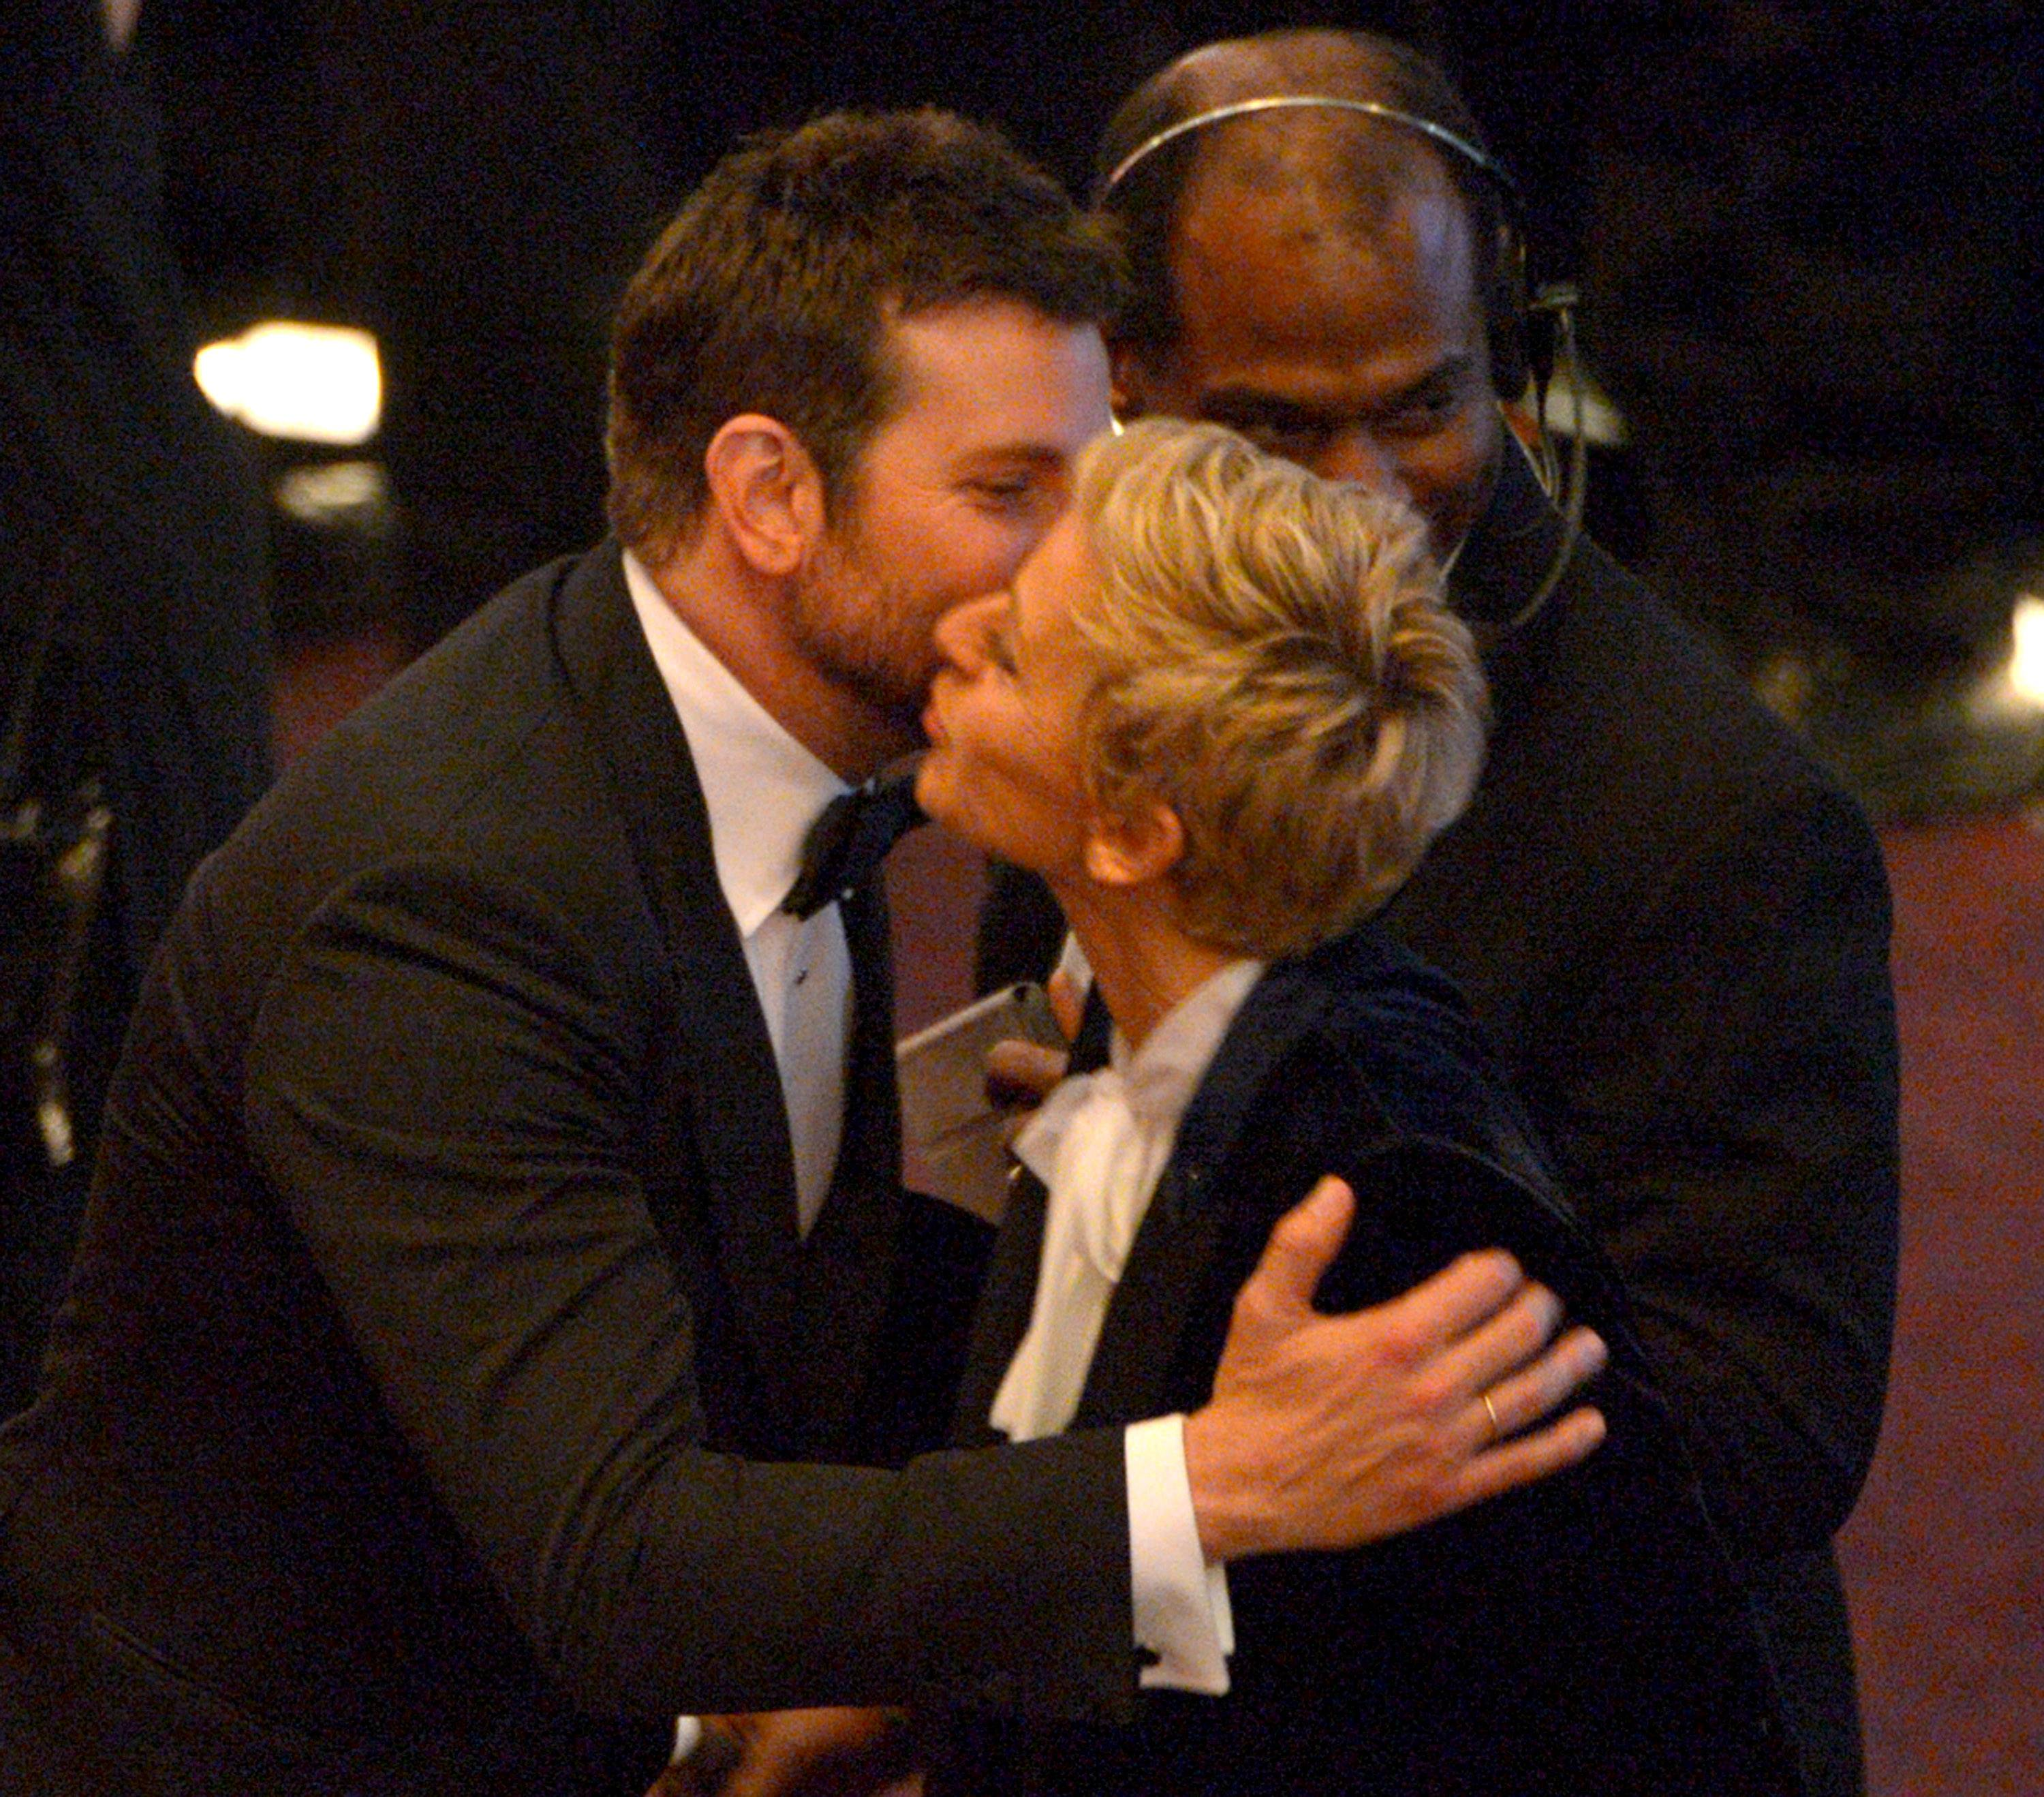 Bradley Cooper and Ellen DeGeneres kiss in the audience during the Oscars.